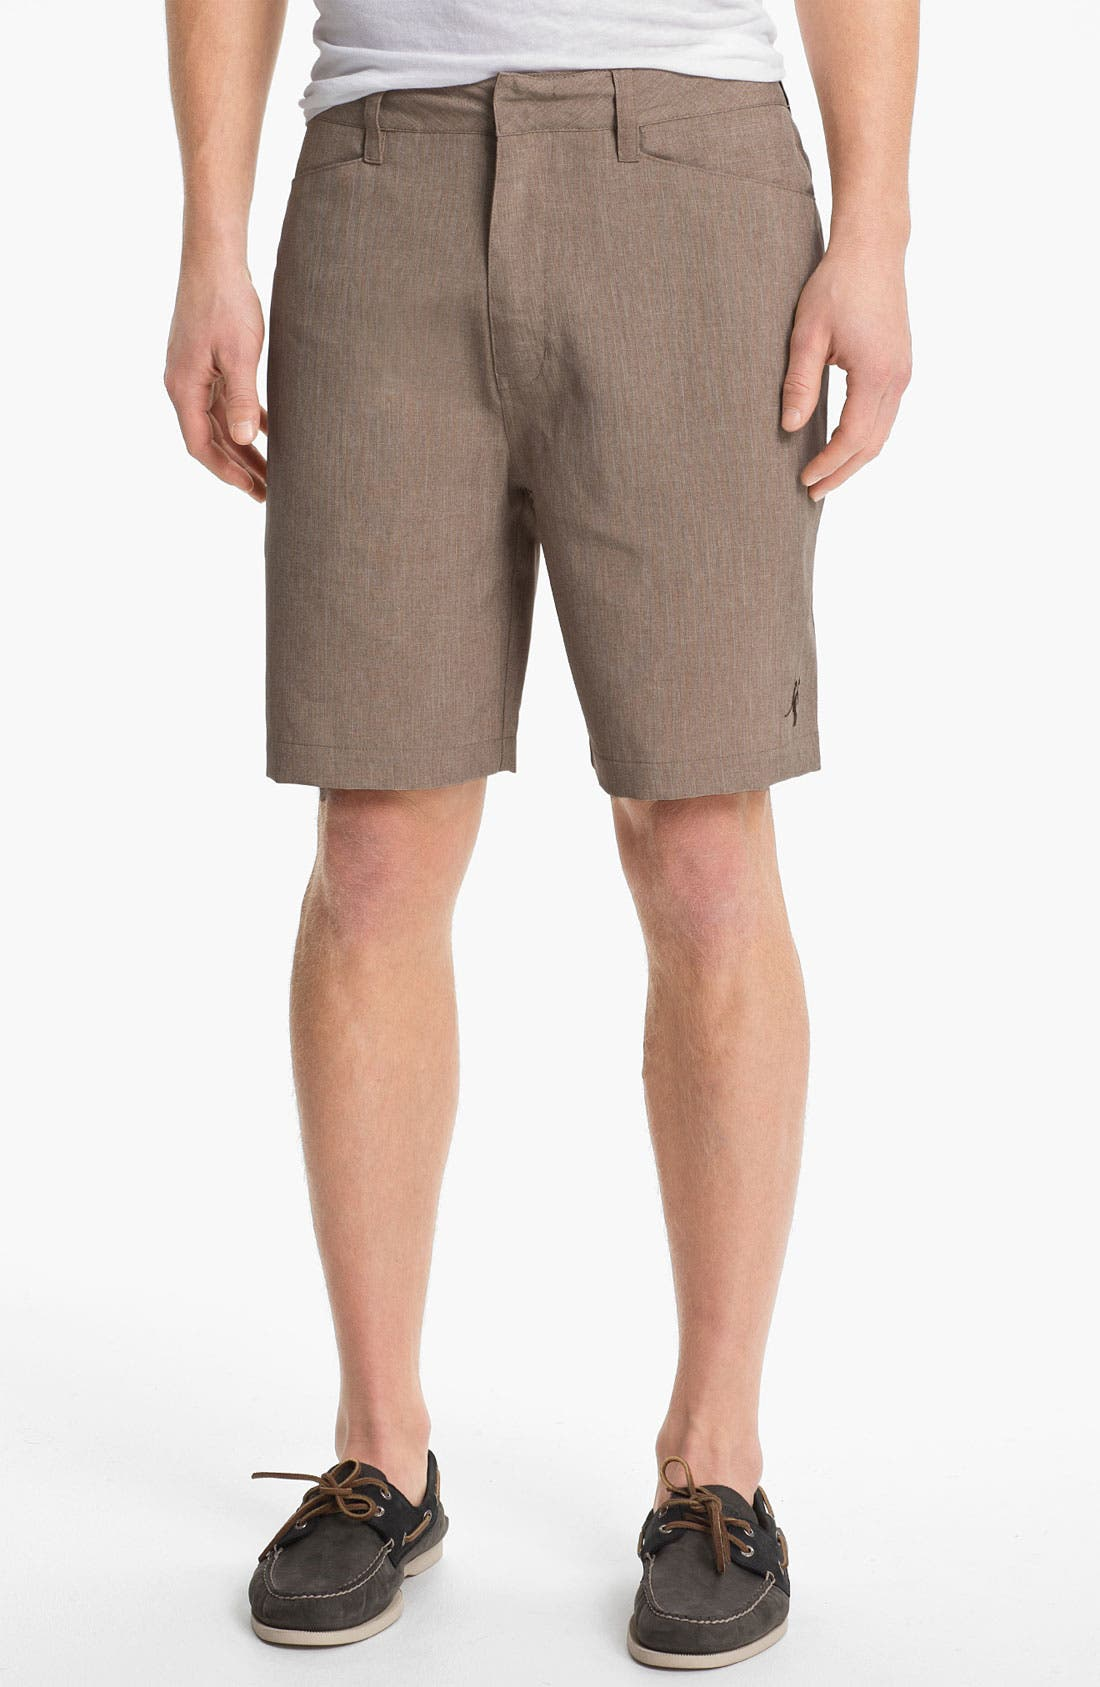 Alternate Image 1 Selected - Toes on the Nose 'Rocker' Khaki Shorts